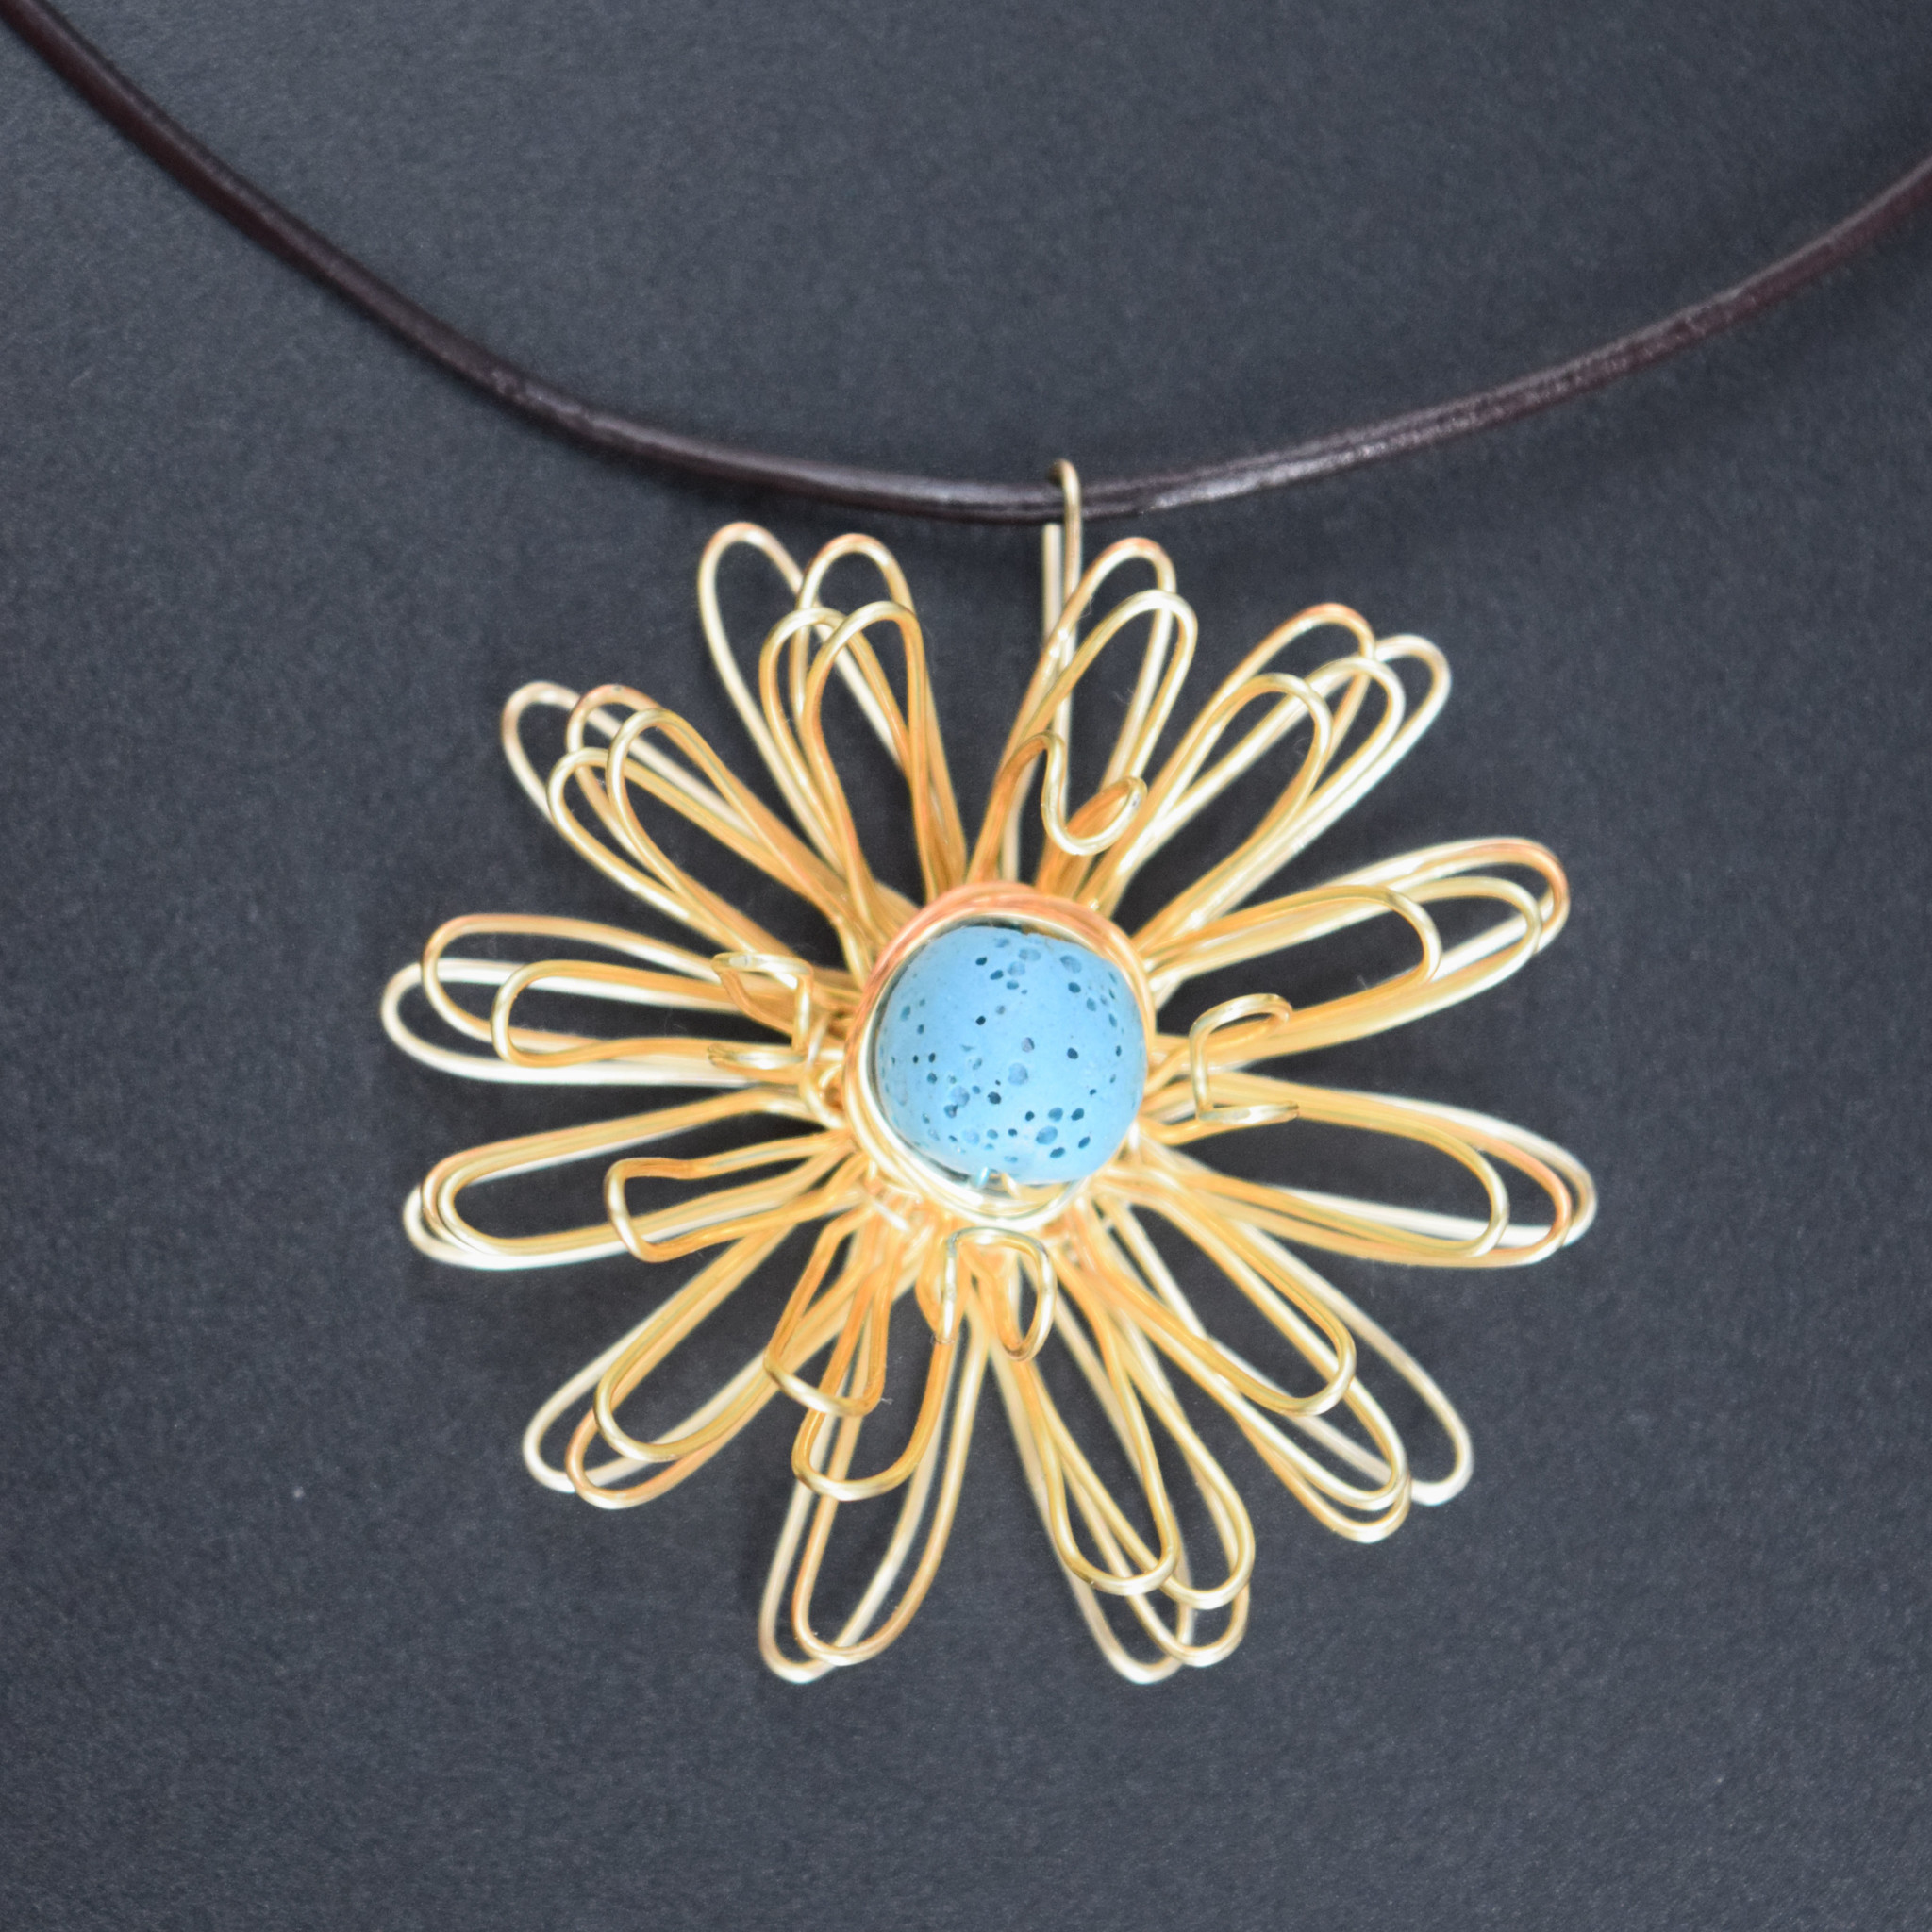 Diffuser Zinna Pendant necklace-1